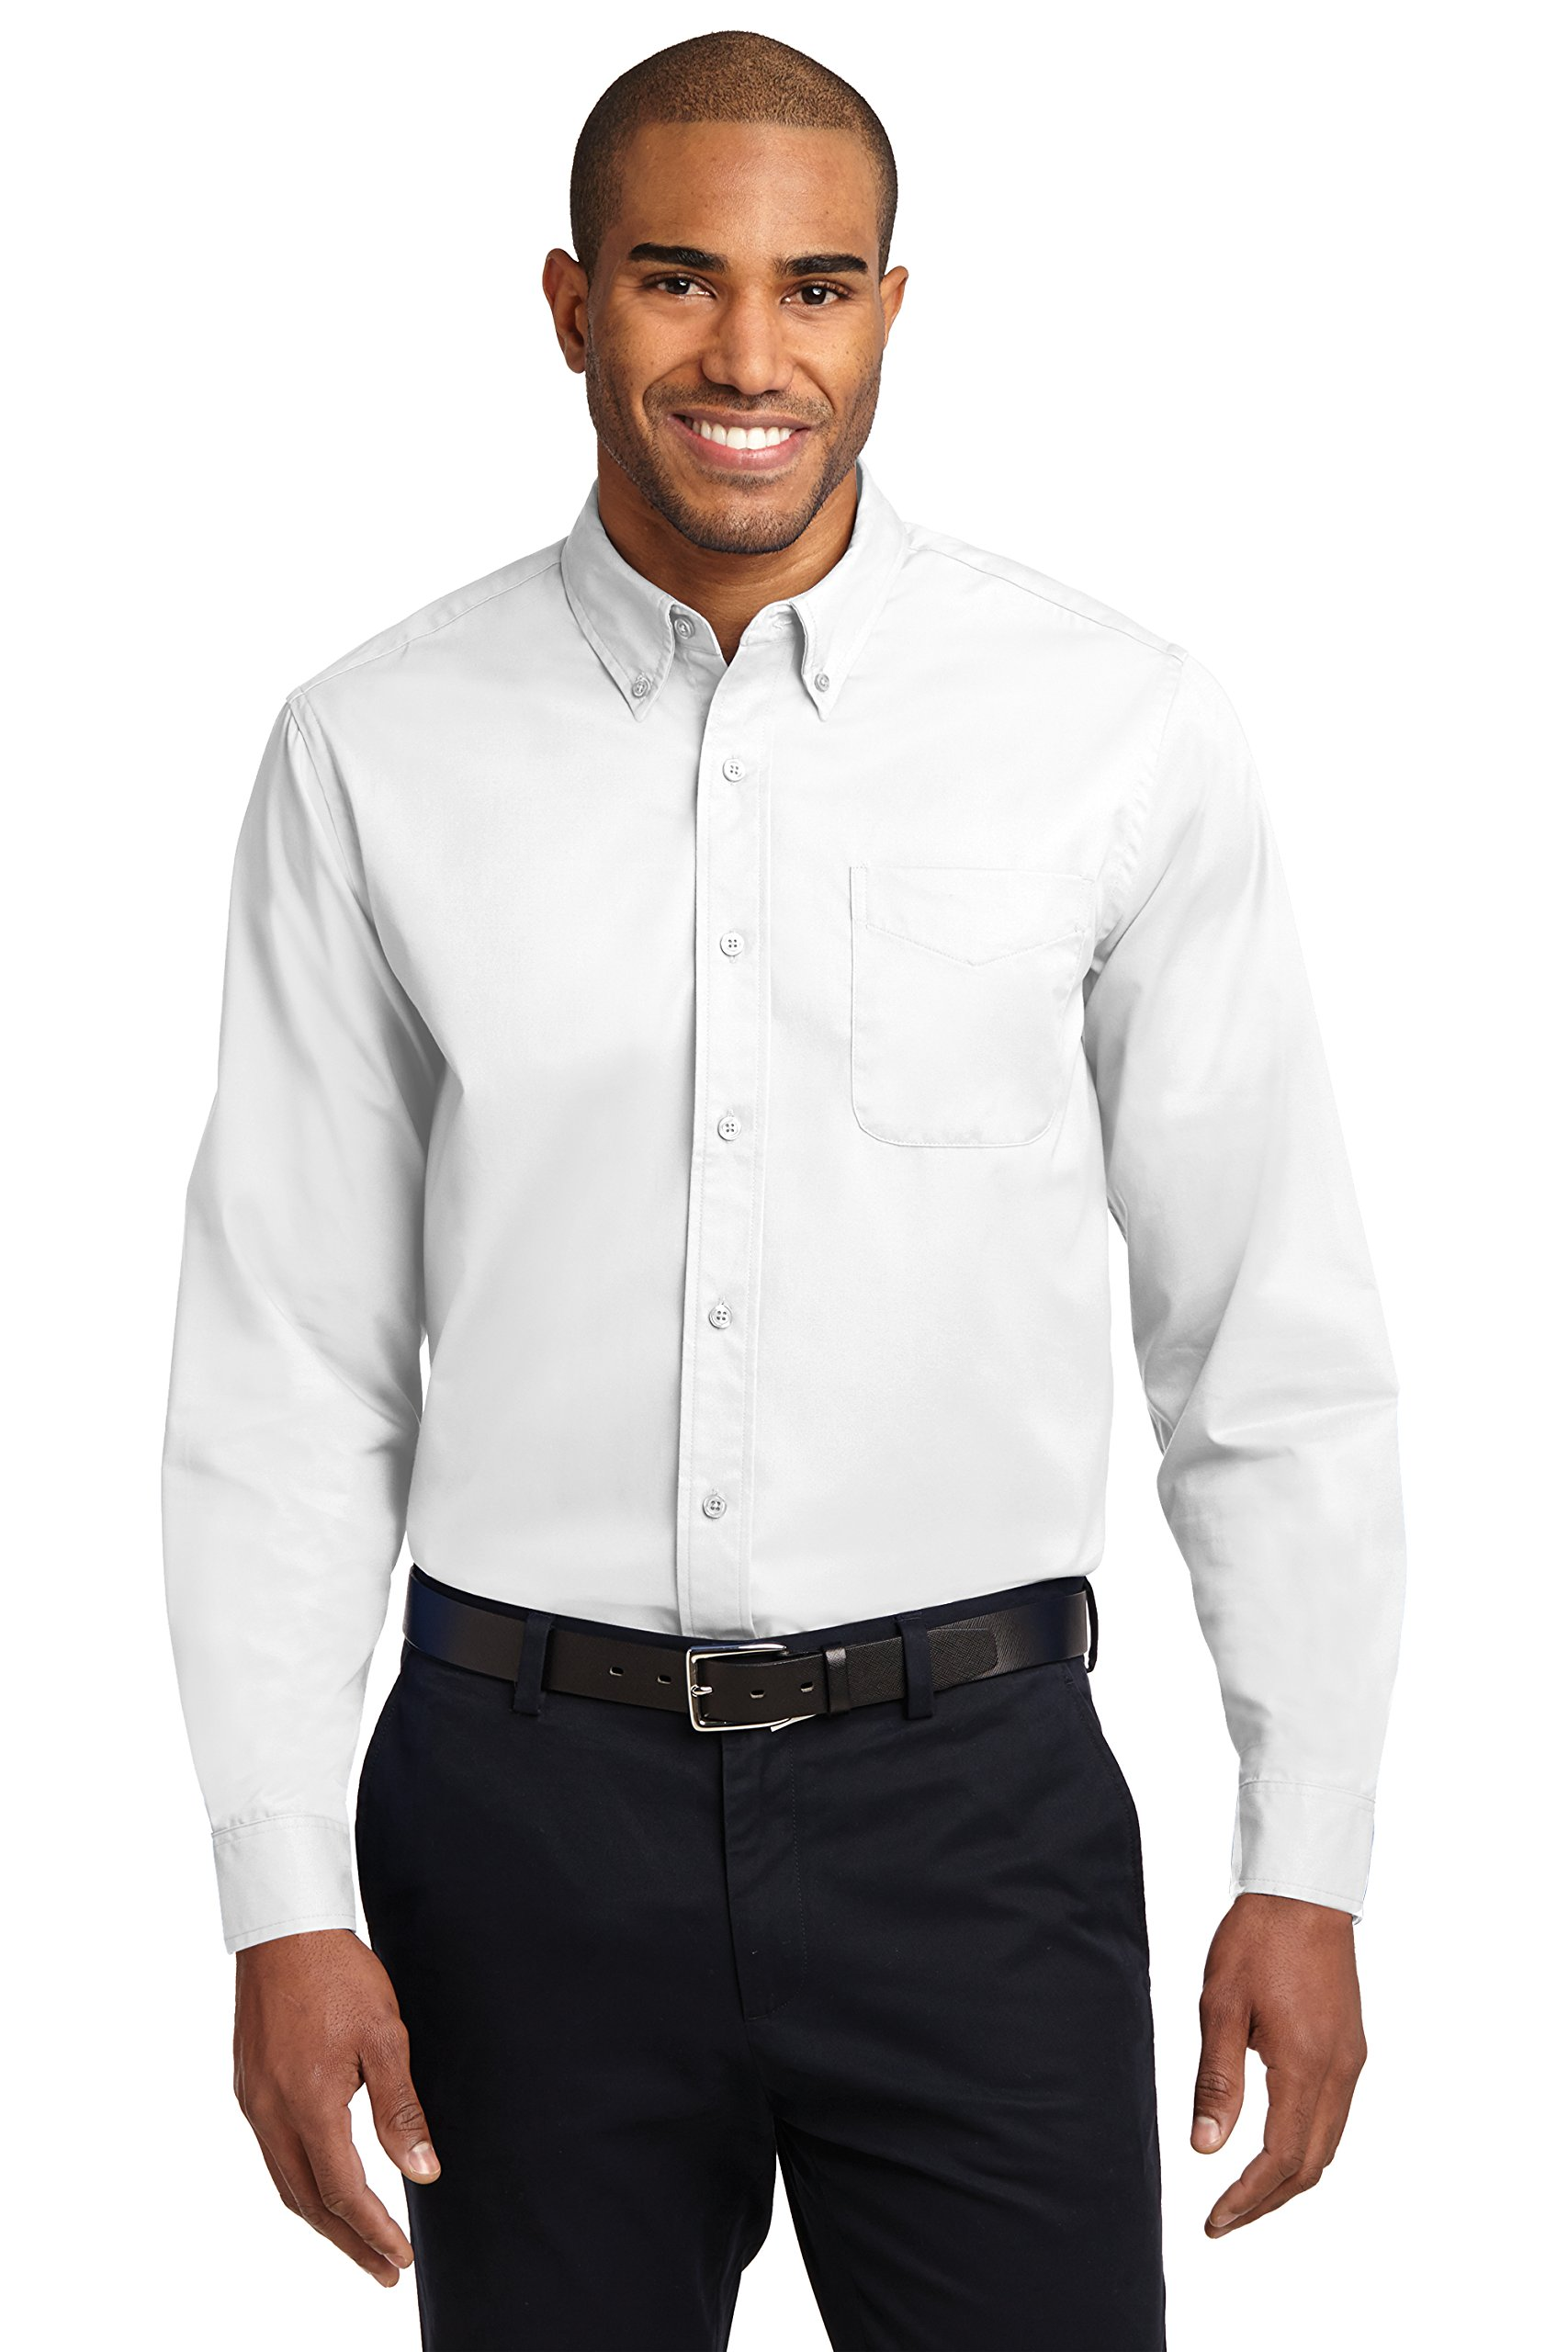 Port Authority Easy Care Men Dress Shirts Long Sleeve – 55/45 PolyCotton – 3XL Tall